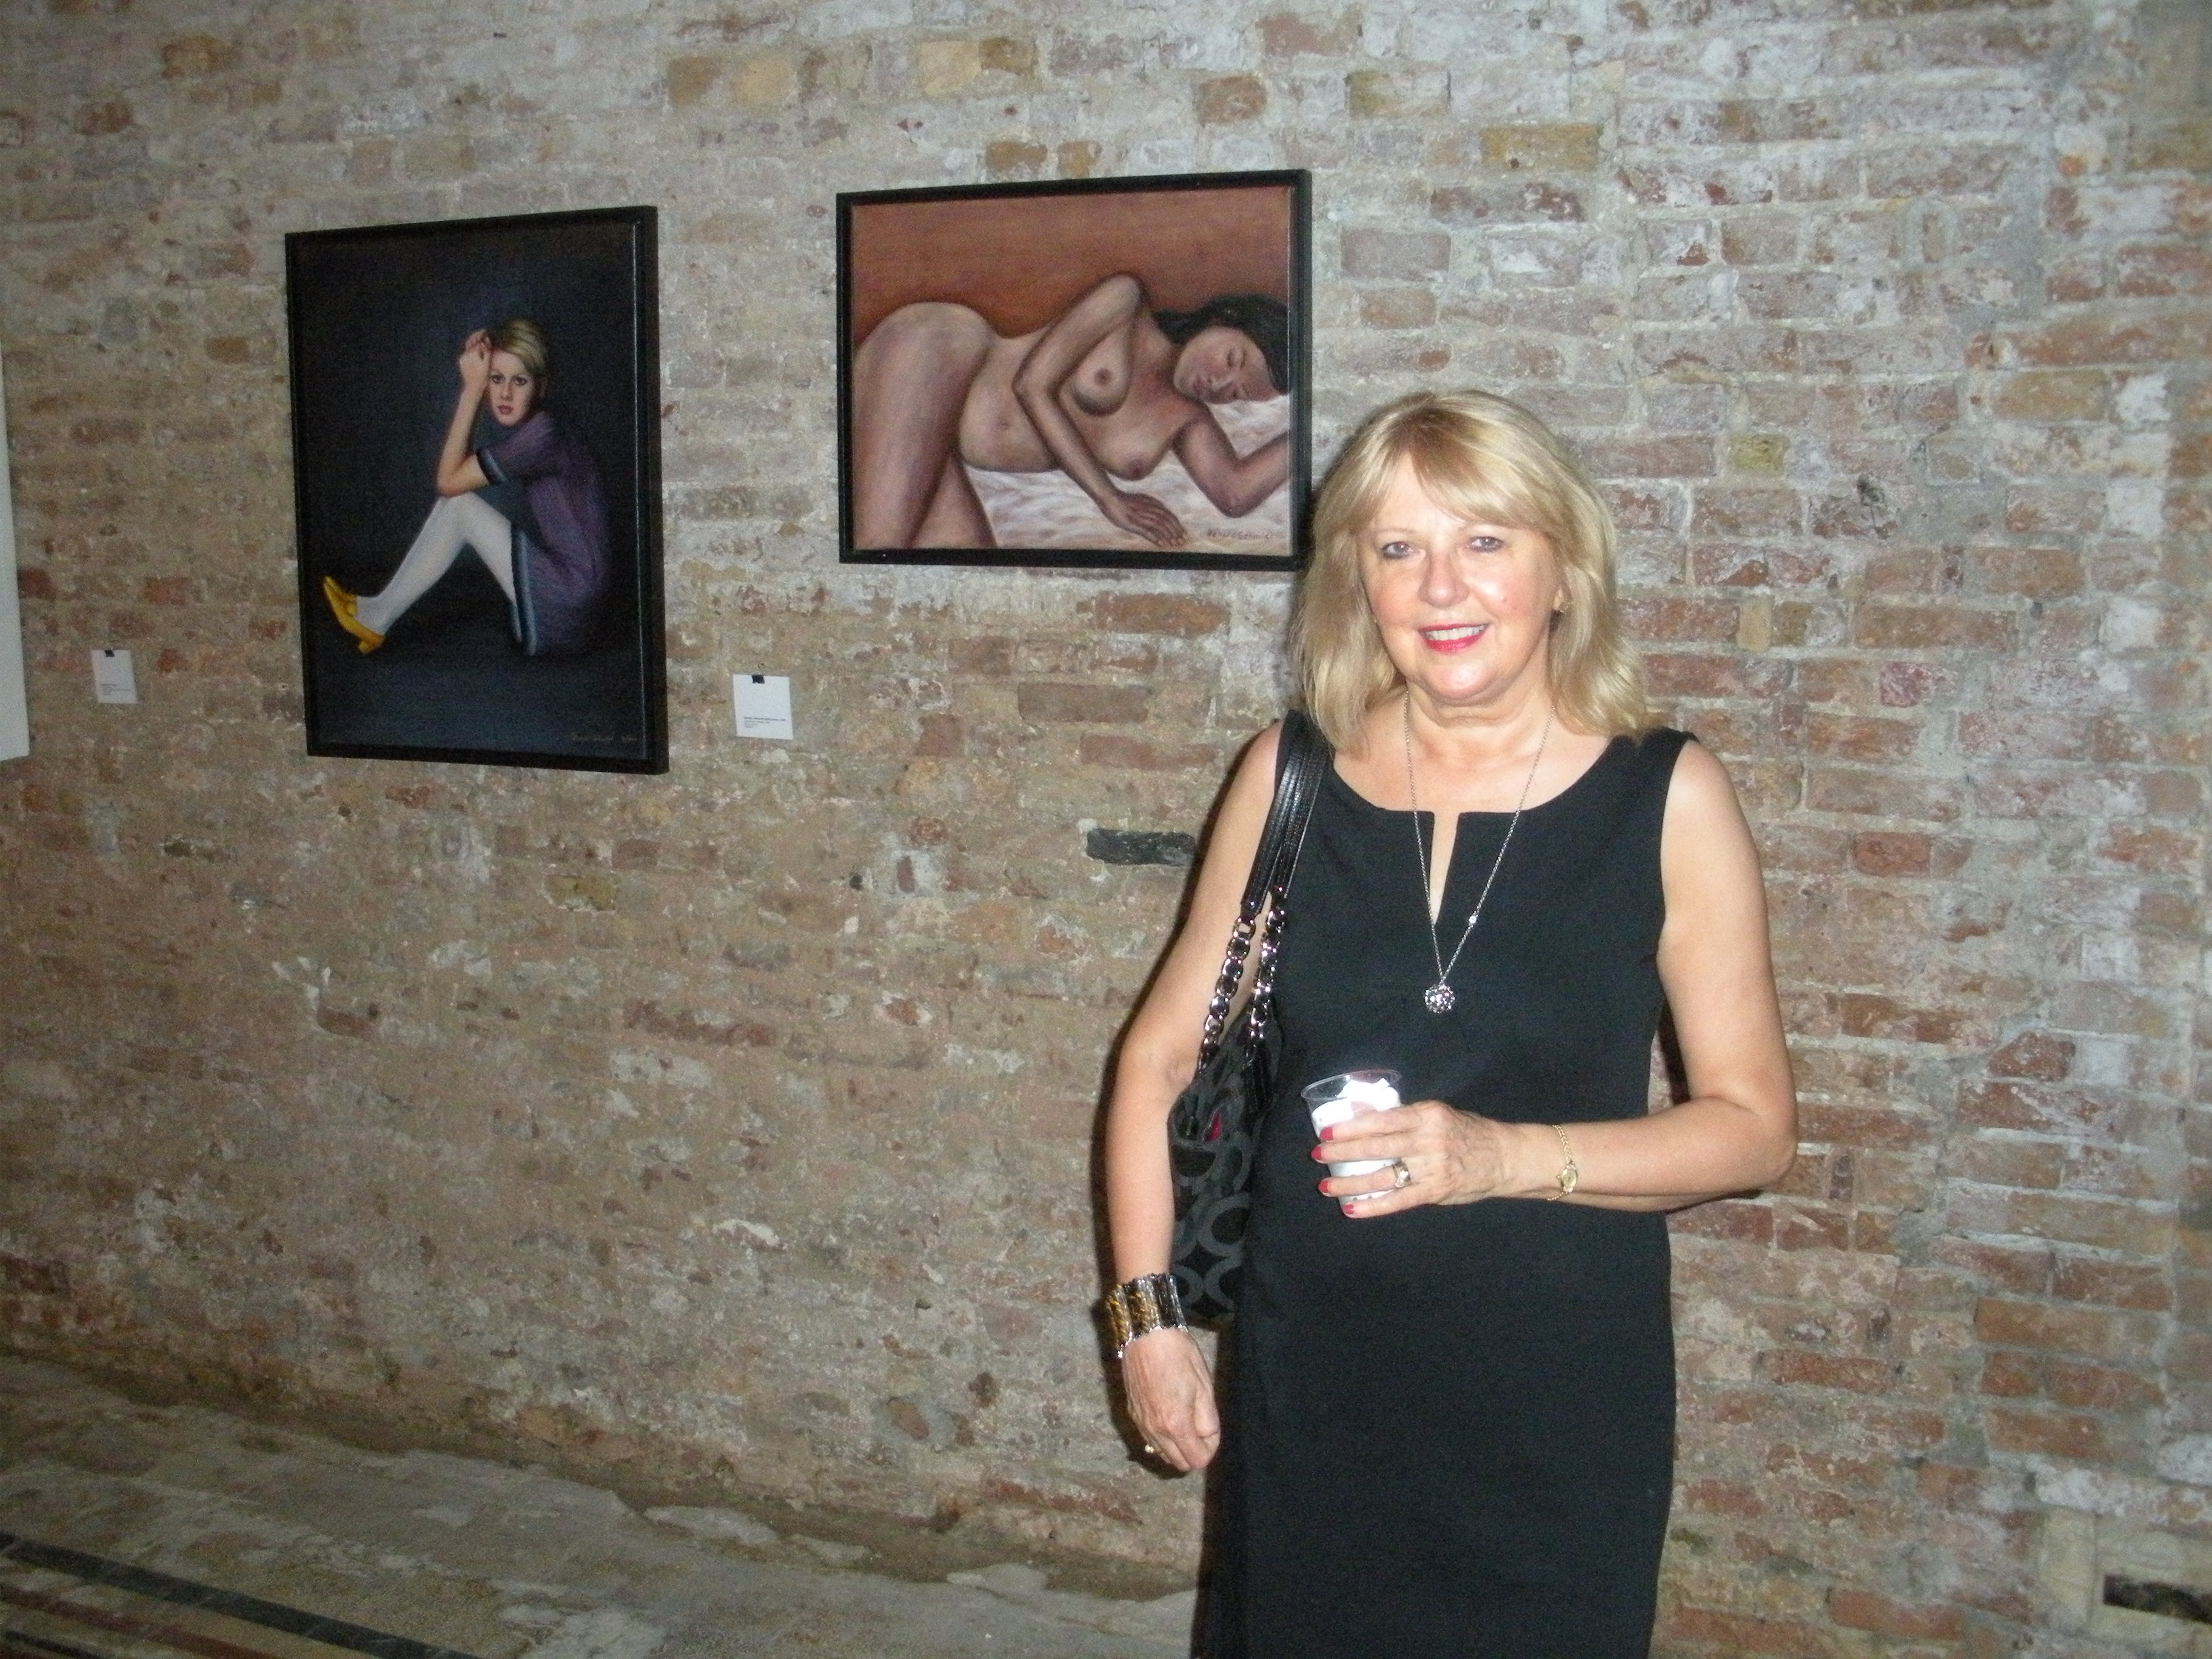 My Paintings at Self Show